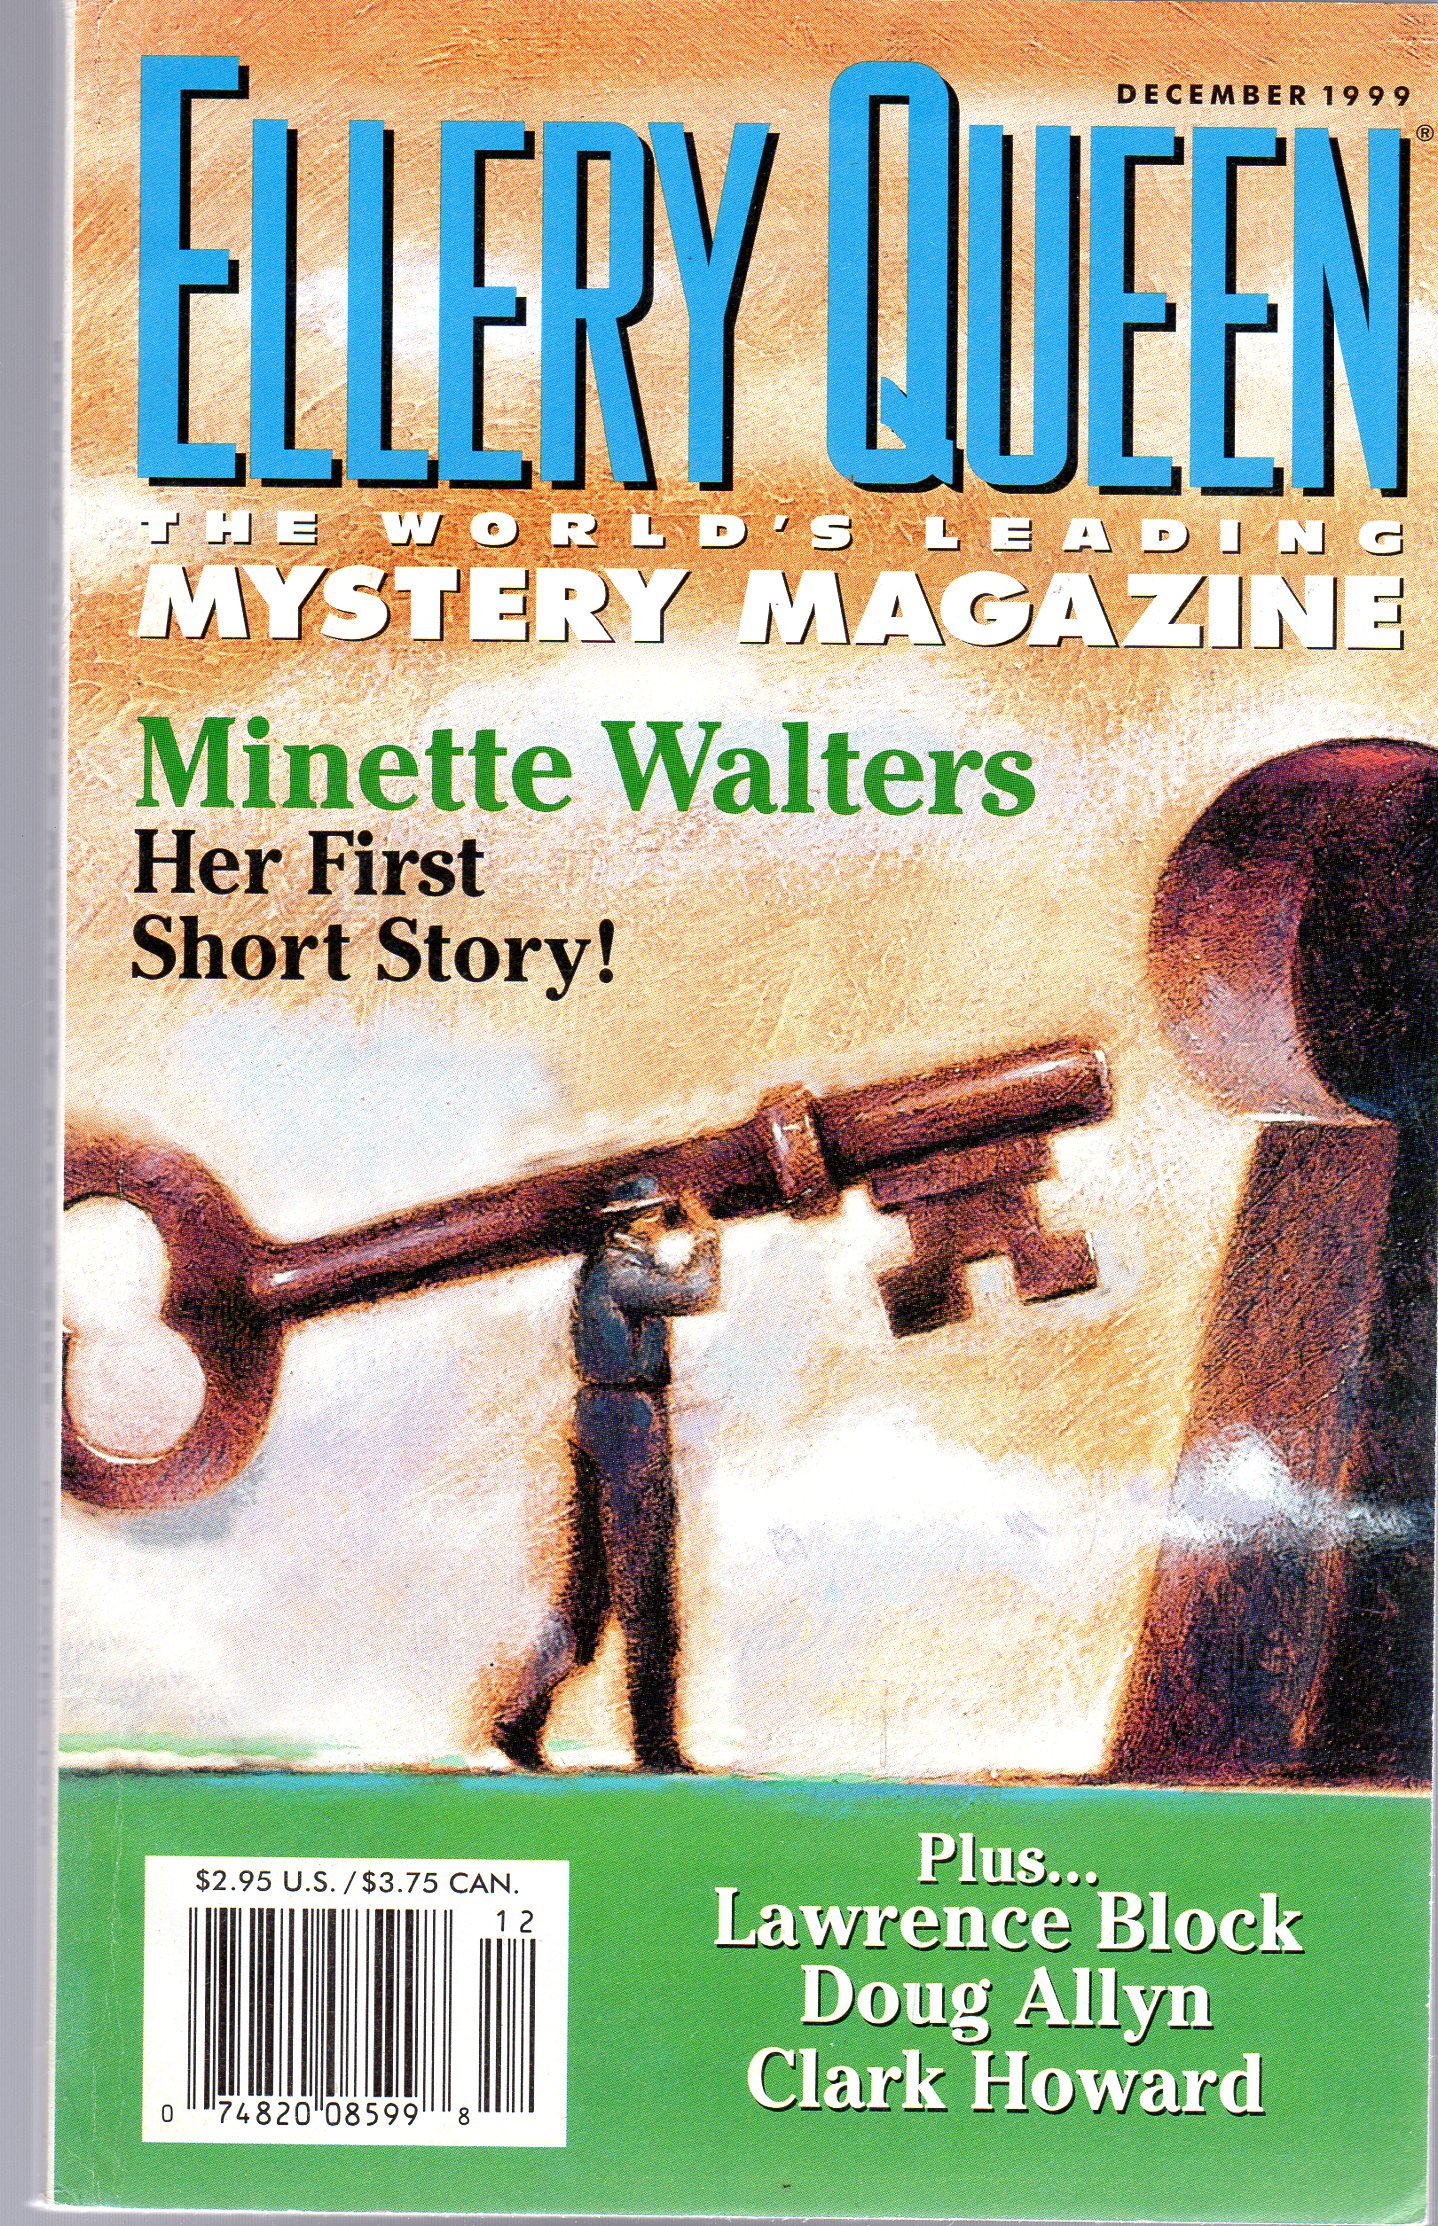 Image for Ellery Queen Mystery Magazine December 1999